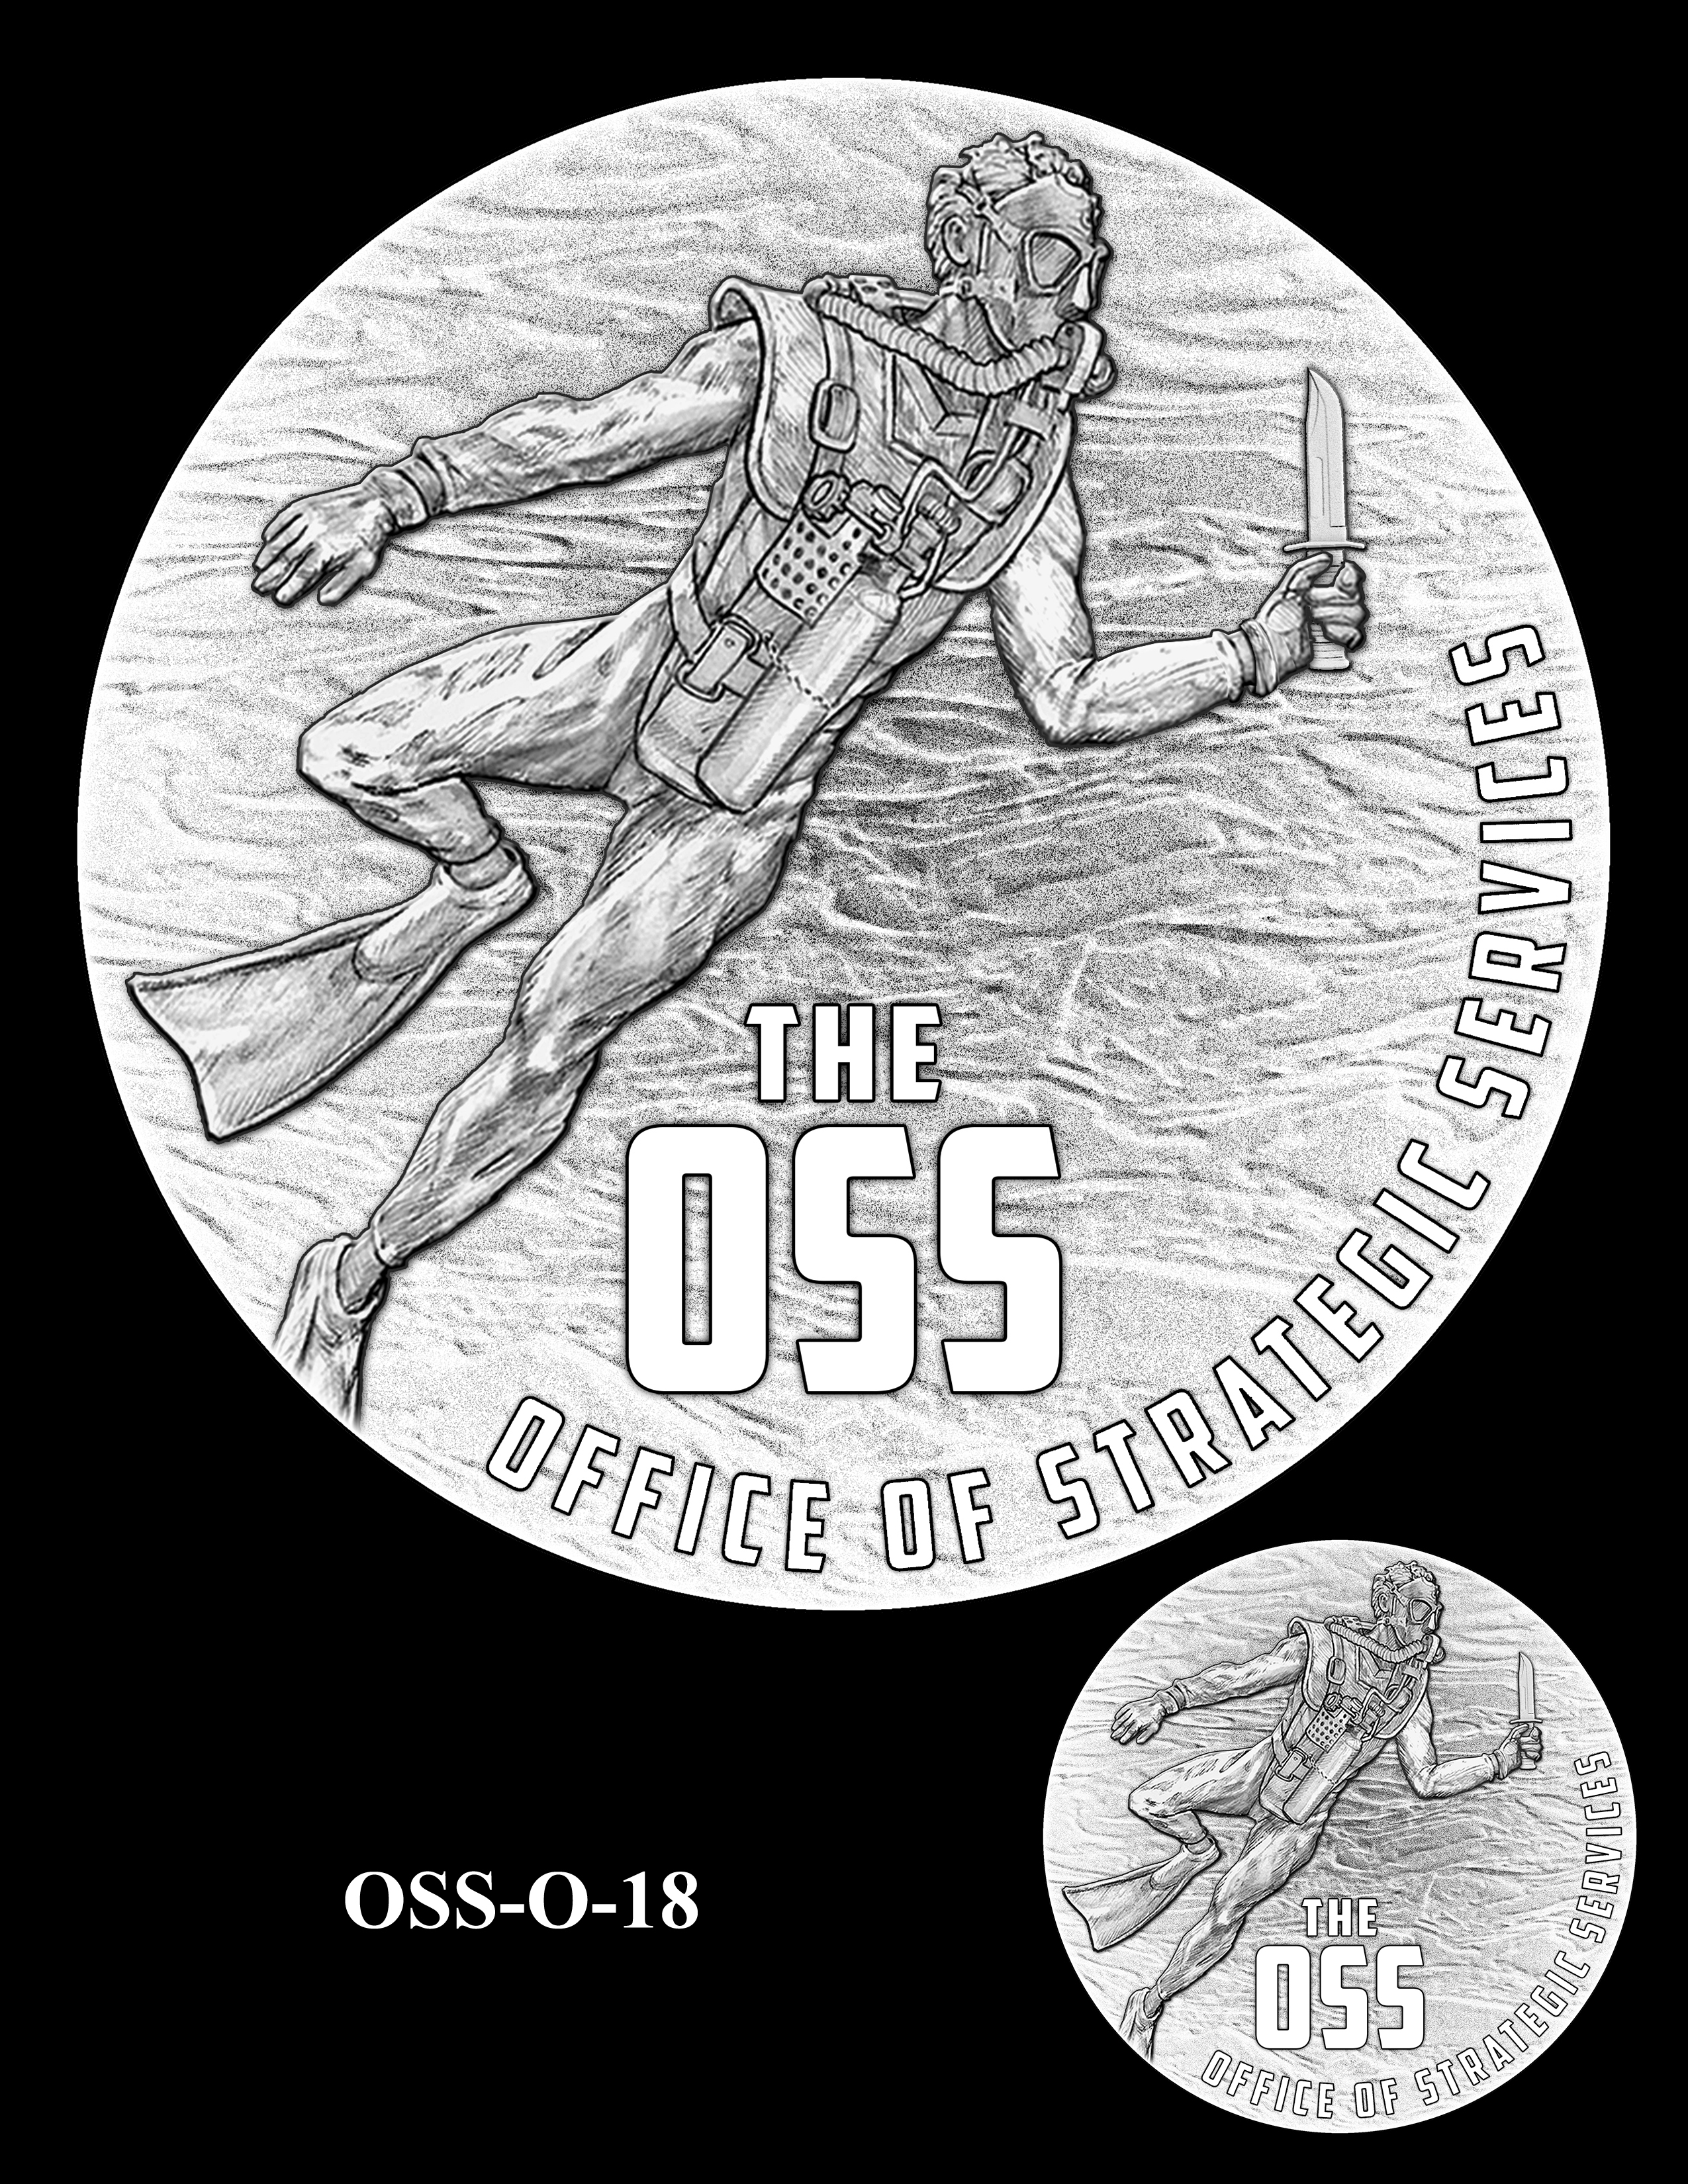 OSS-O-18 -- Office of Strategic Services Congressional Gold Medal